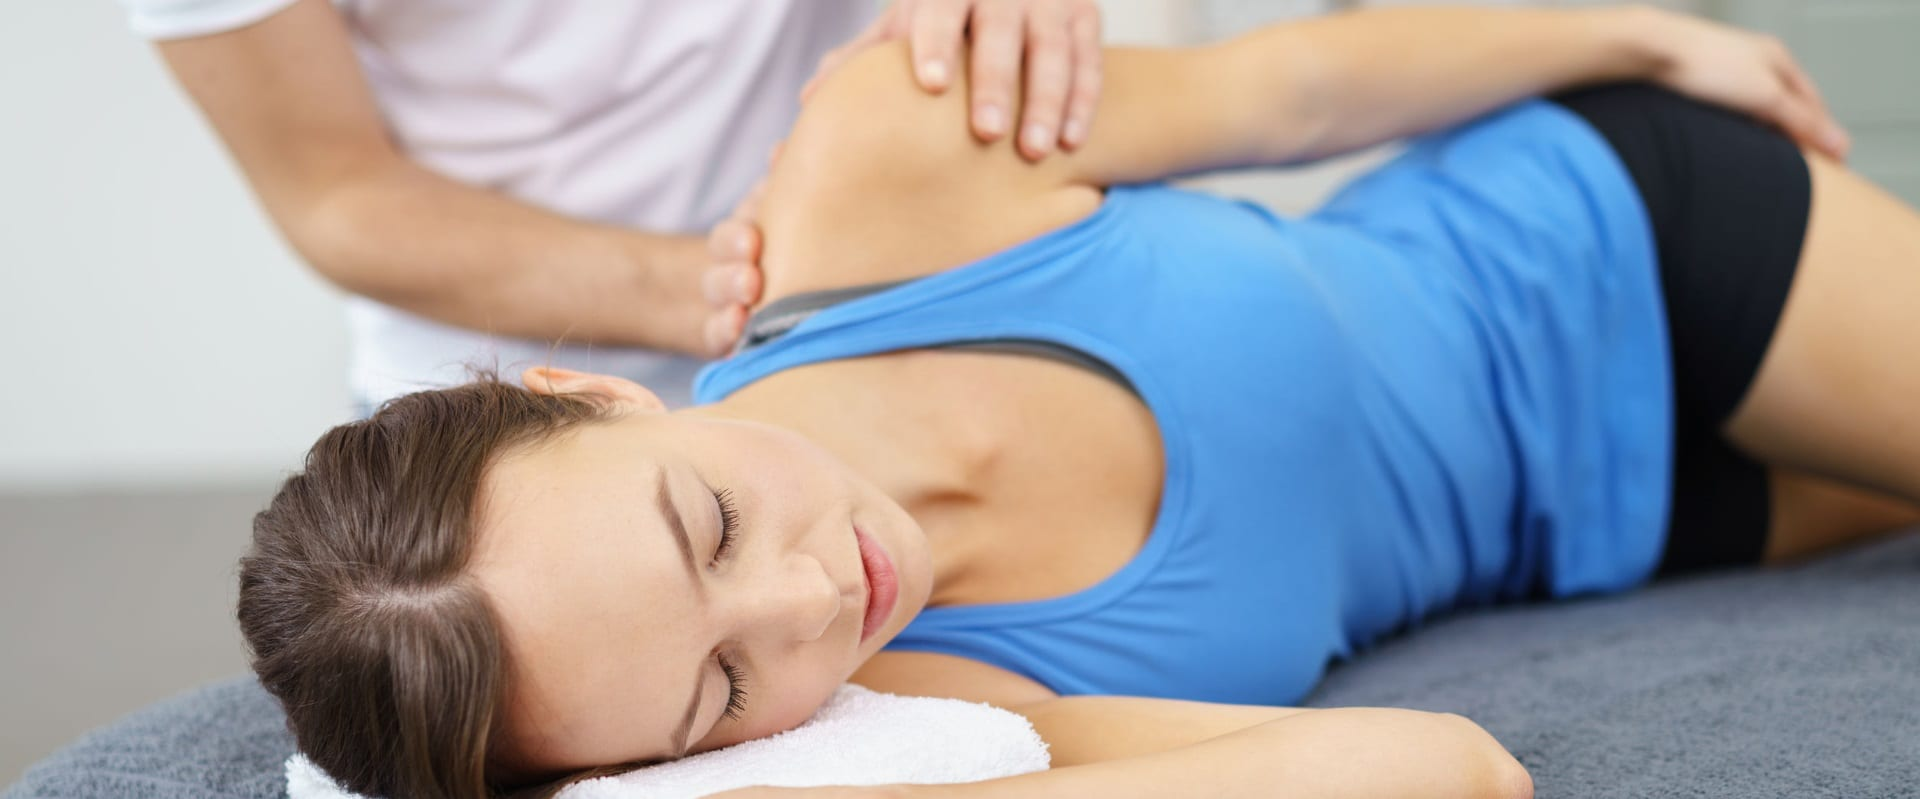 treatments plympton osteopathic clinic osteopath plymouth